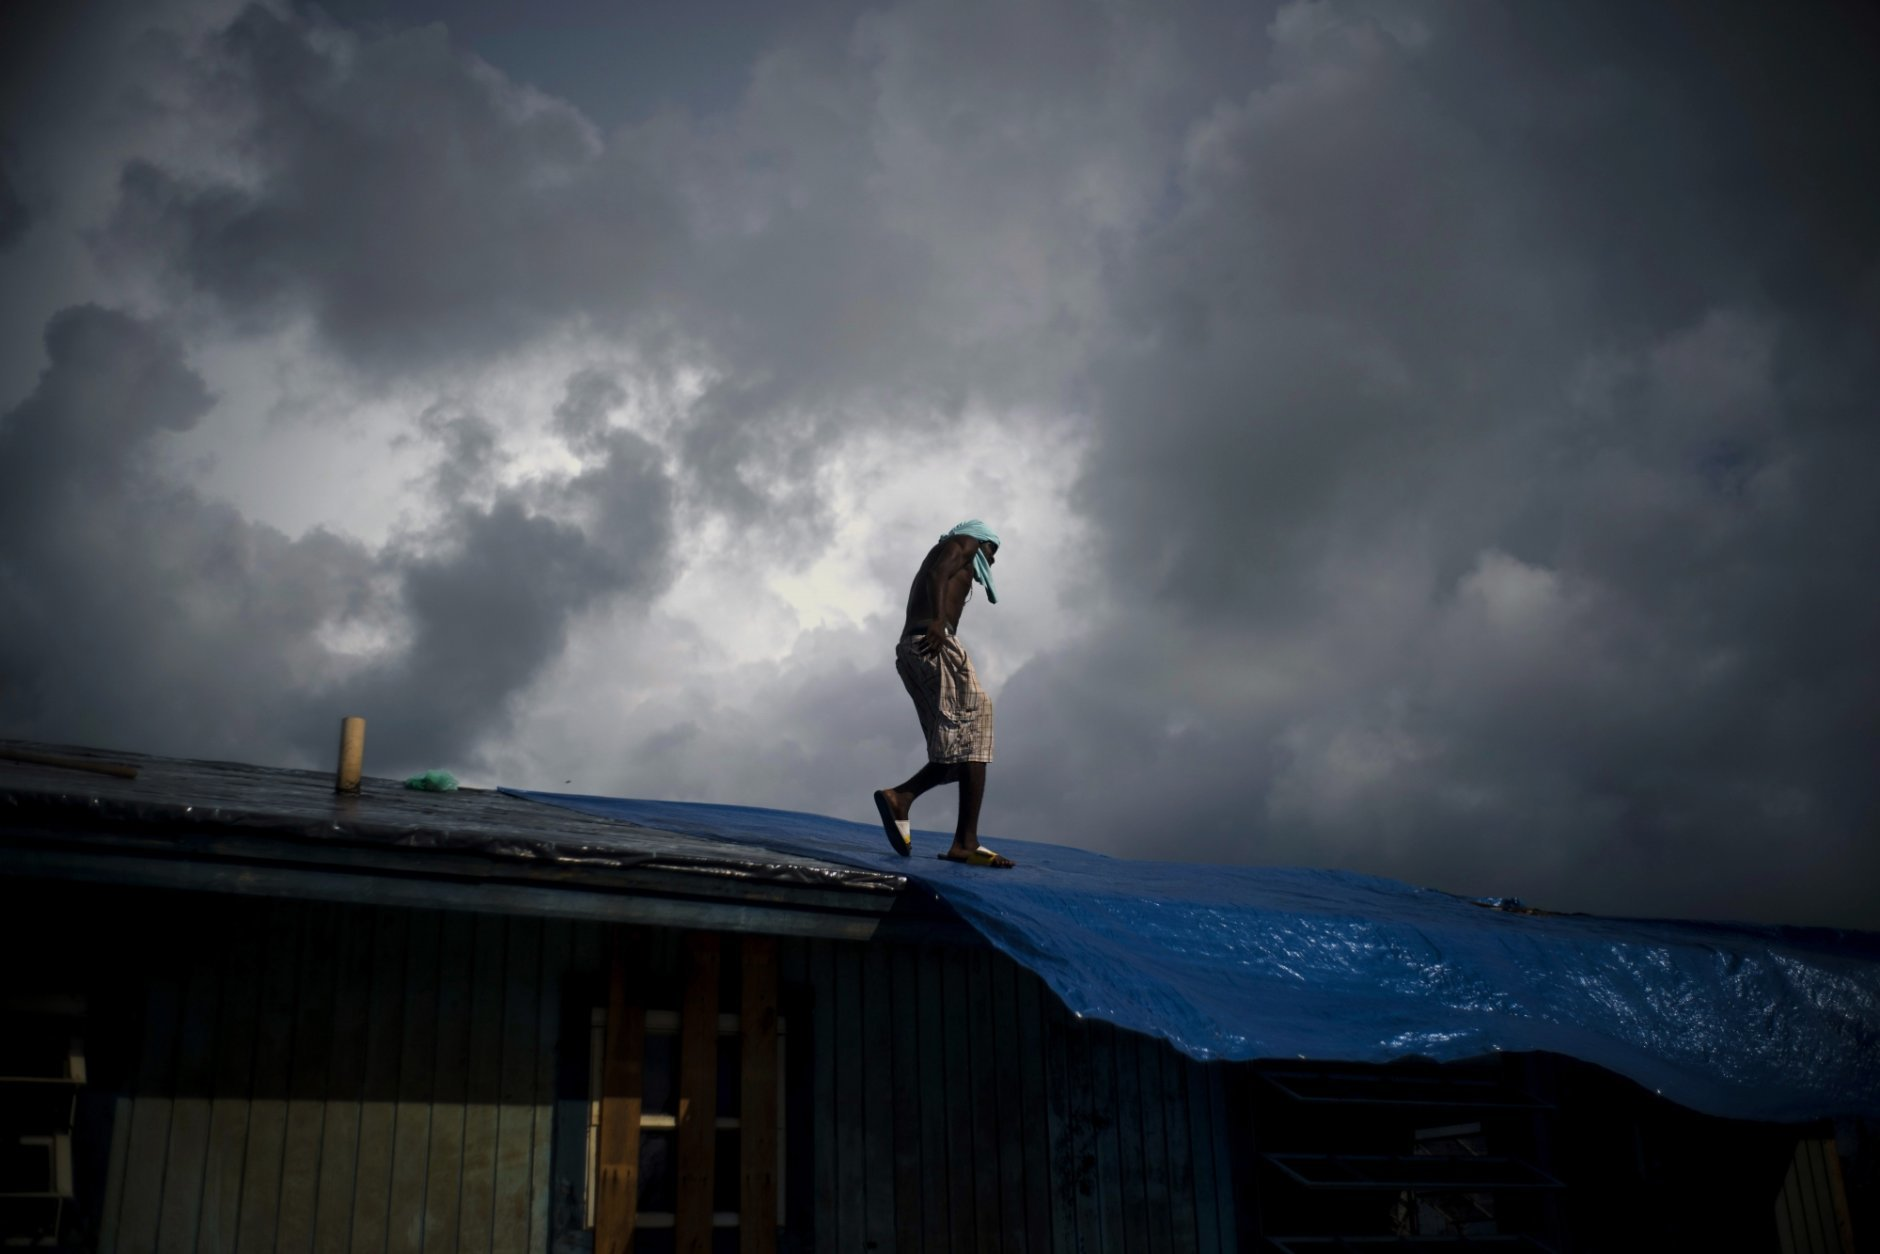 """Trevon Laing walks the roof of his house to repair the damage made by Hurricane Dorian, in Gold Rock Creek, Grand Bahama, Bahamas, Thursday Sept. 12, 2019. Trevor says """"After the hurricane they had me for dead, My momma was crying."""" When he returned, he said he found his brother crying on the front porch.""""I'm like, 'Hey, I'm not dead! You guys have no faith in me. I'm a survivor,'"""" he said, adding with a laugh, """"He was shocked and mad at the same time."""" (AP Photo / Ramon Espinosa)"""